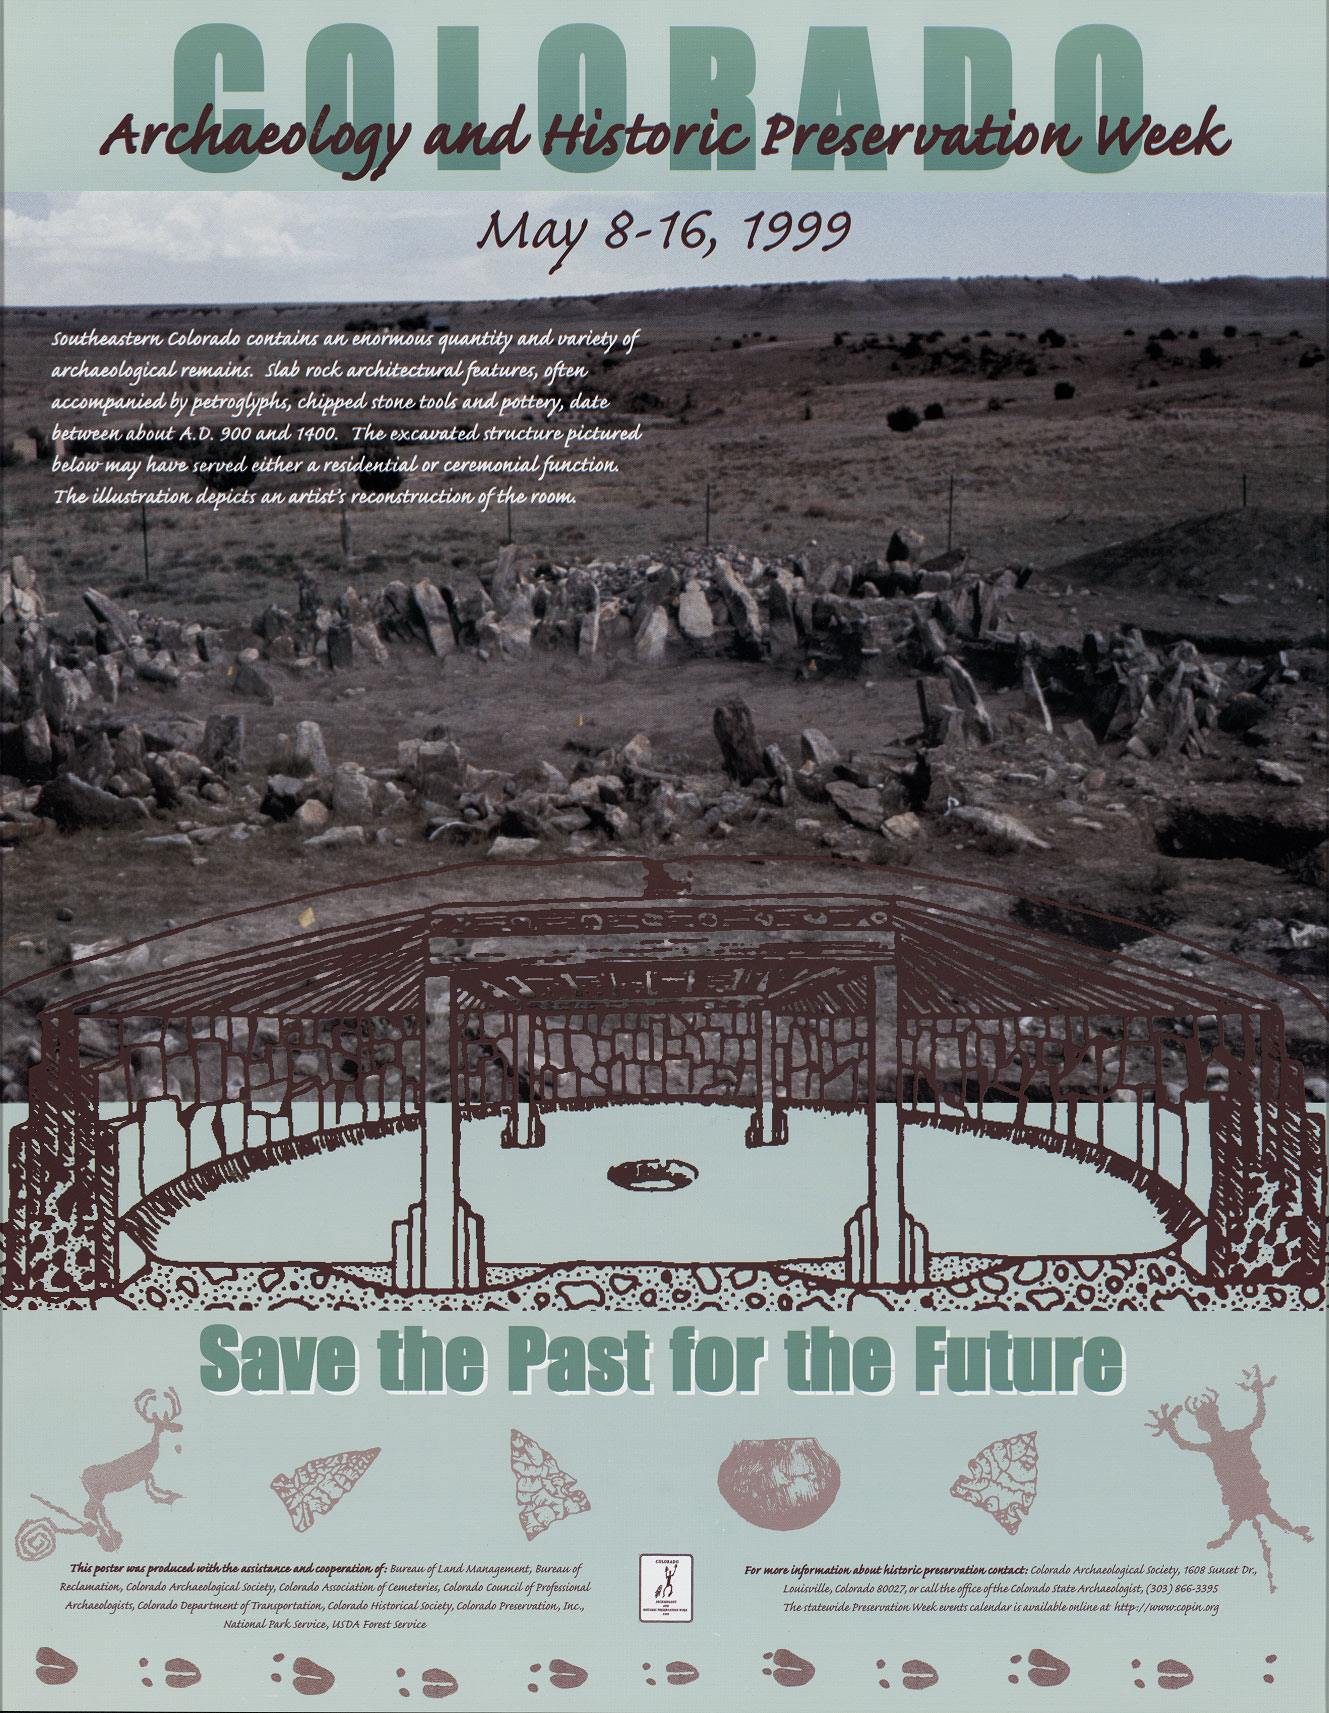 1999 Archaeology & Historic Preservation Week poster.